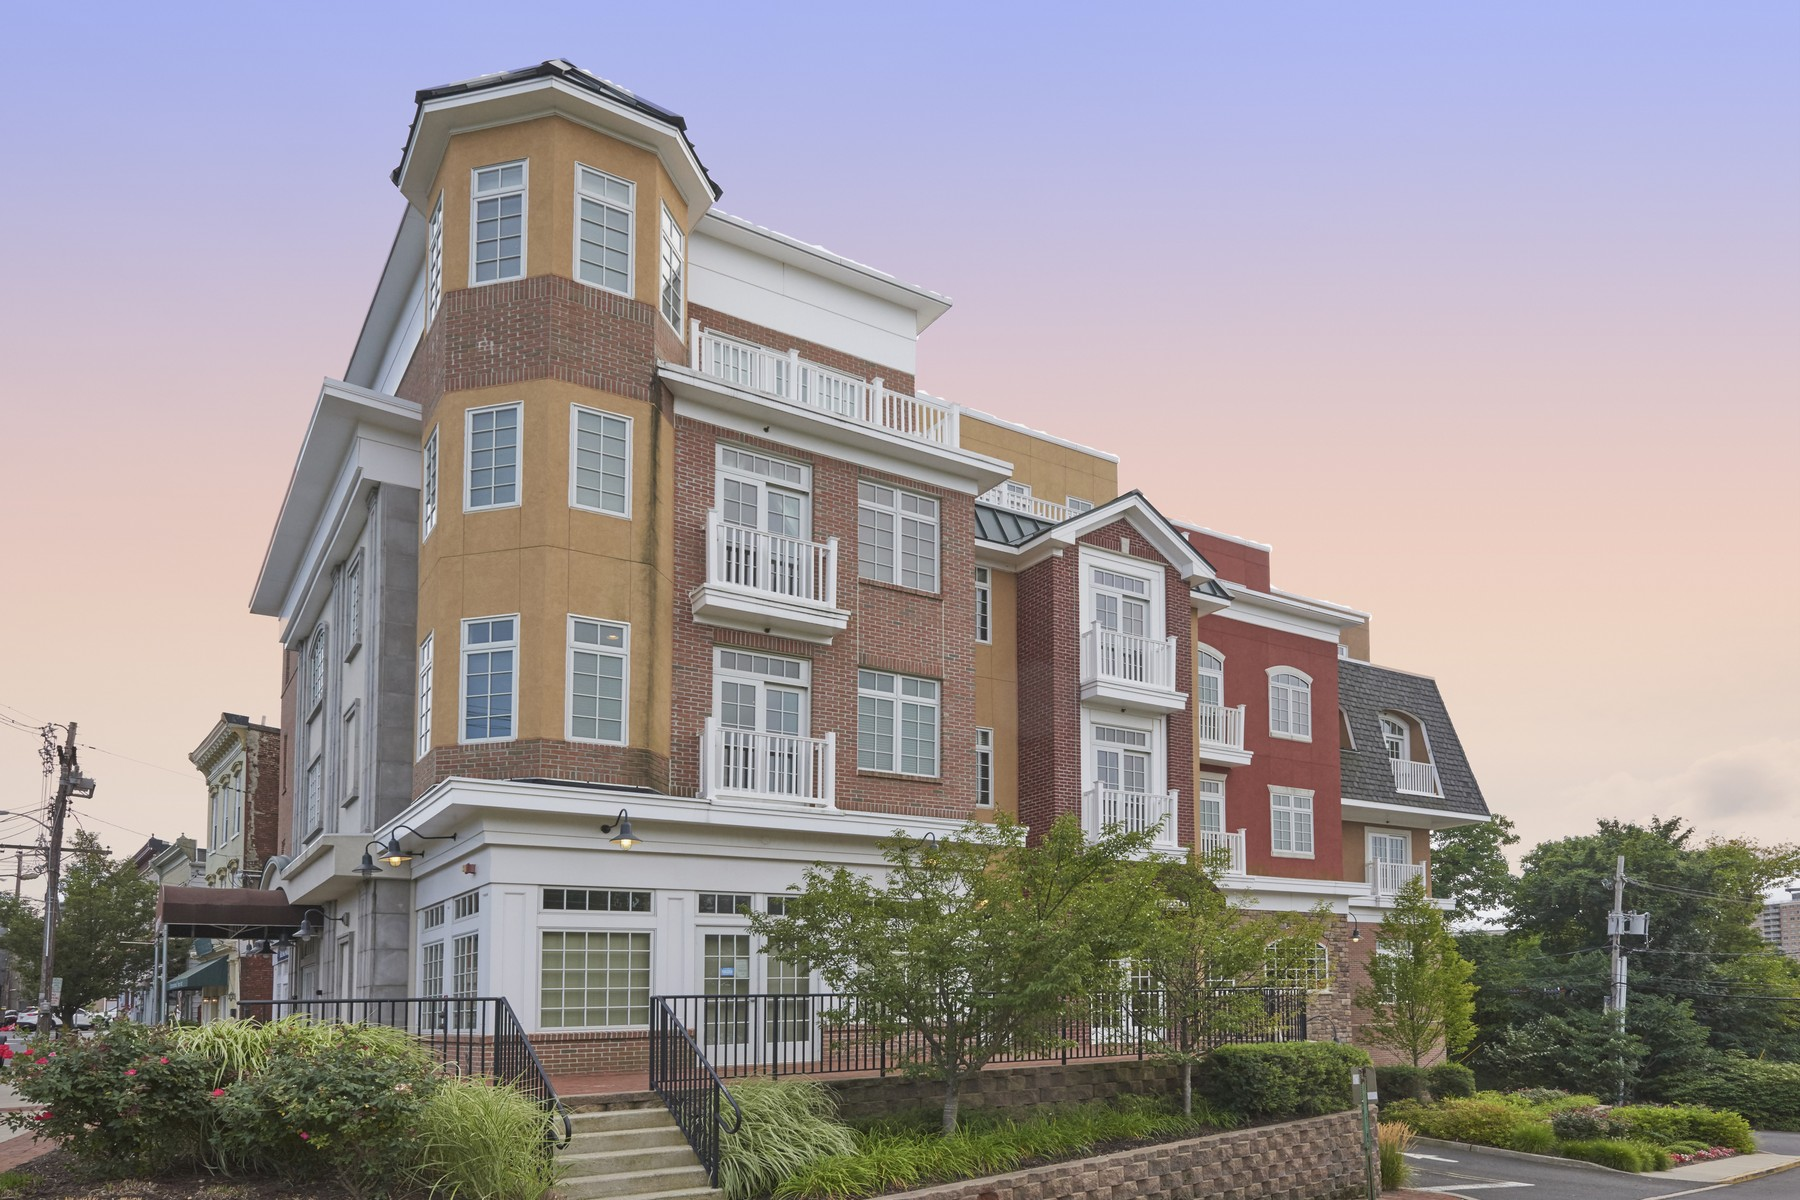 Townhouse for Sale at SOHO CHIC 11 Wharf Avenue #1 Red Bank, New Jersey 07701 United States